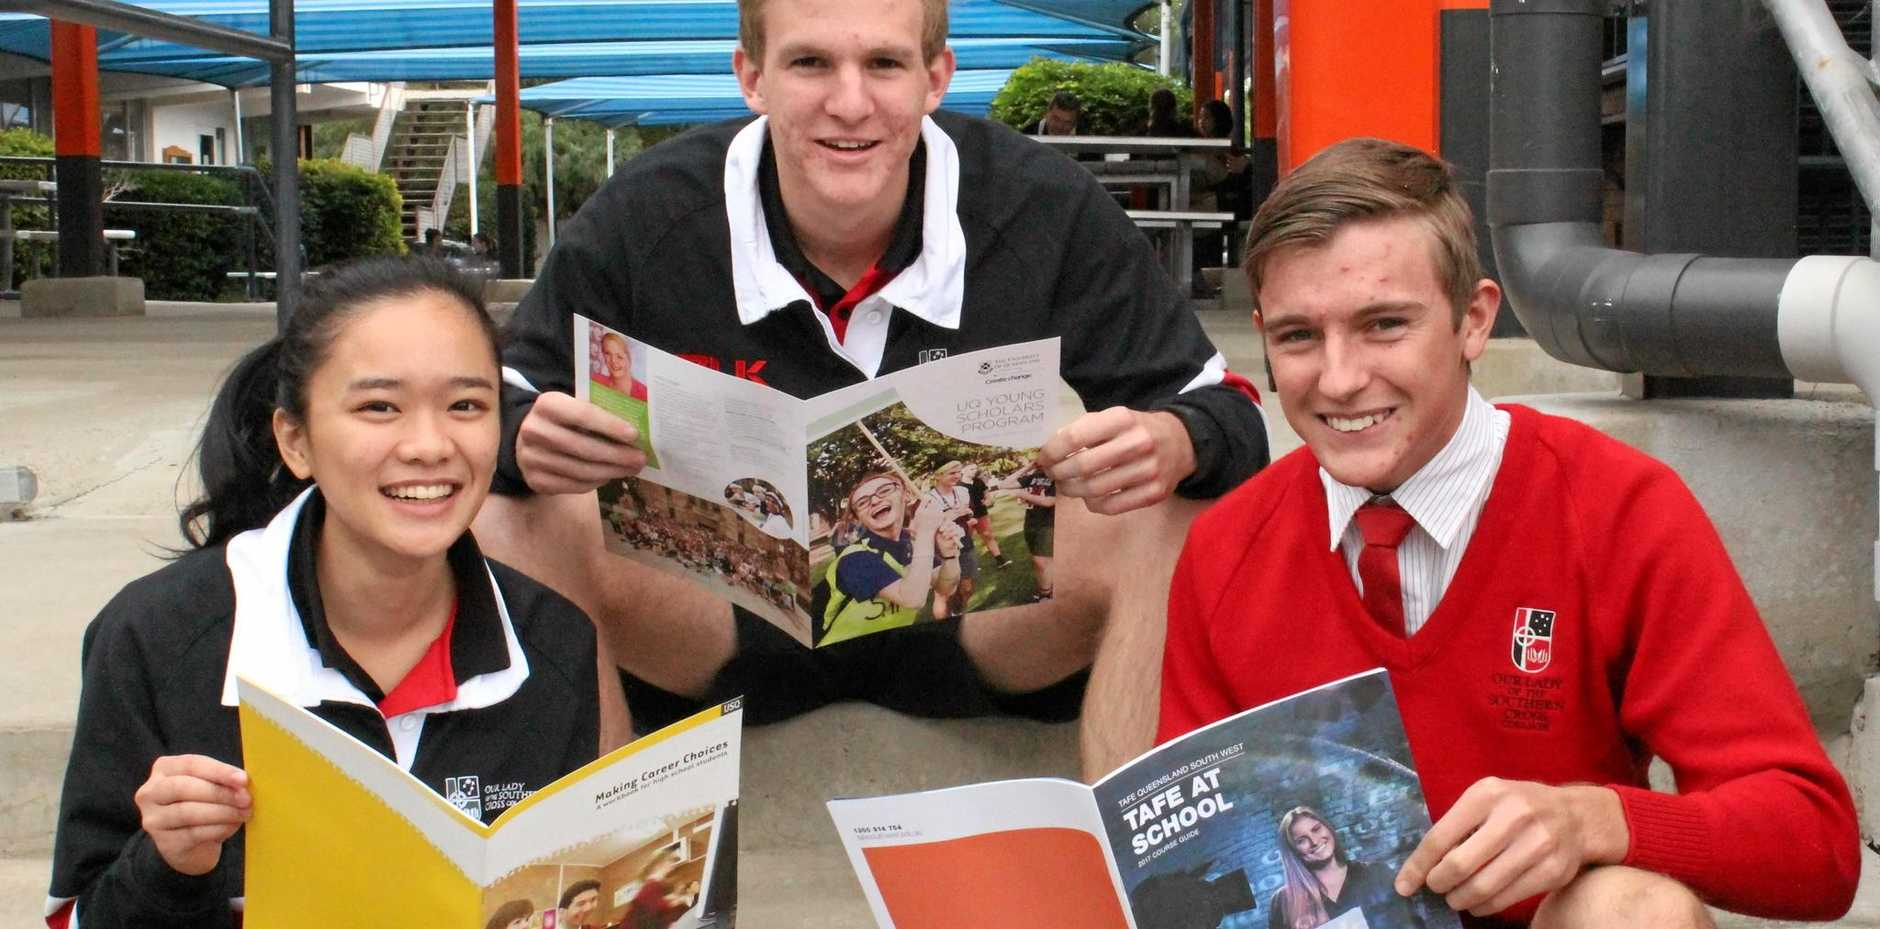 WHERE TO NEXT: College captains Angel Tia and Matthew Cook, and prefect Will Gillespie.